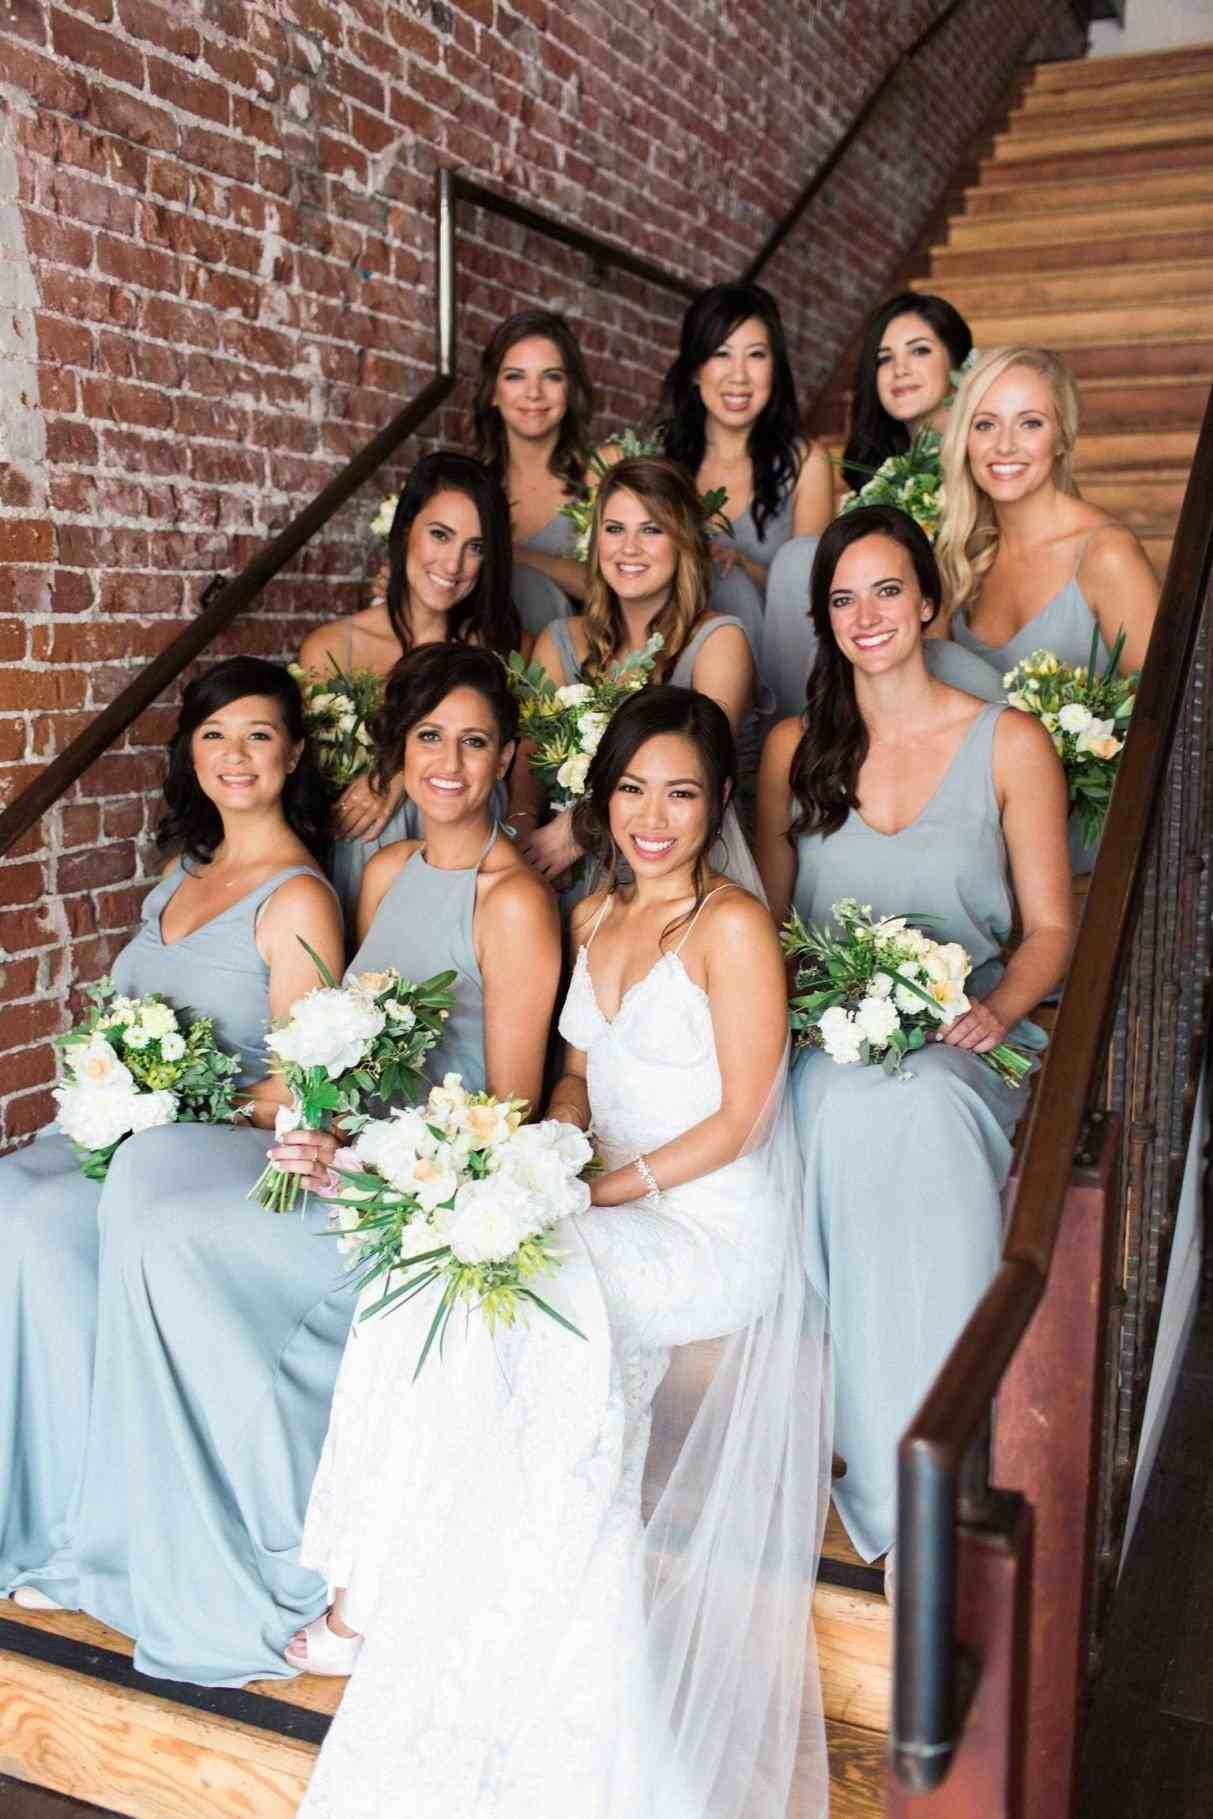 New Post winter wonderland wedding bridesmaid dresses xmast